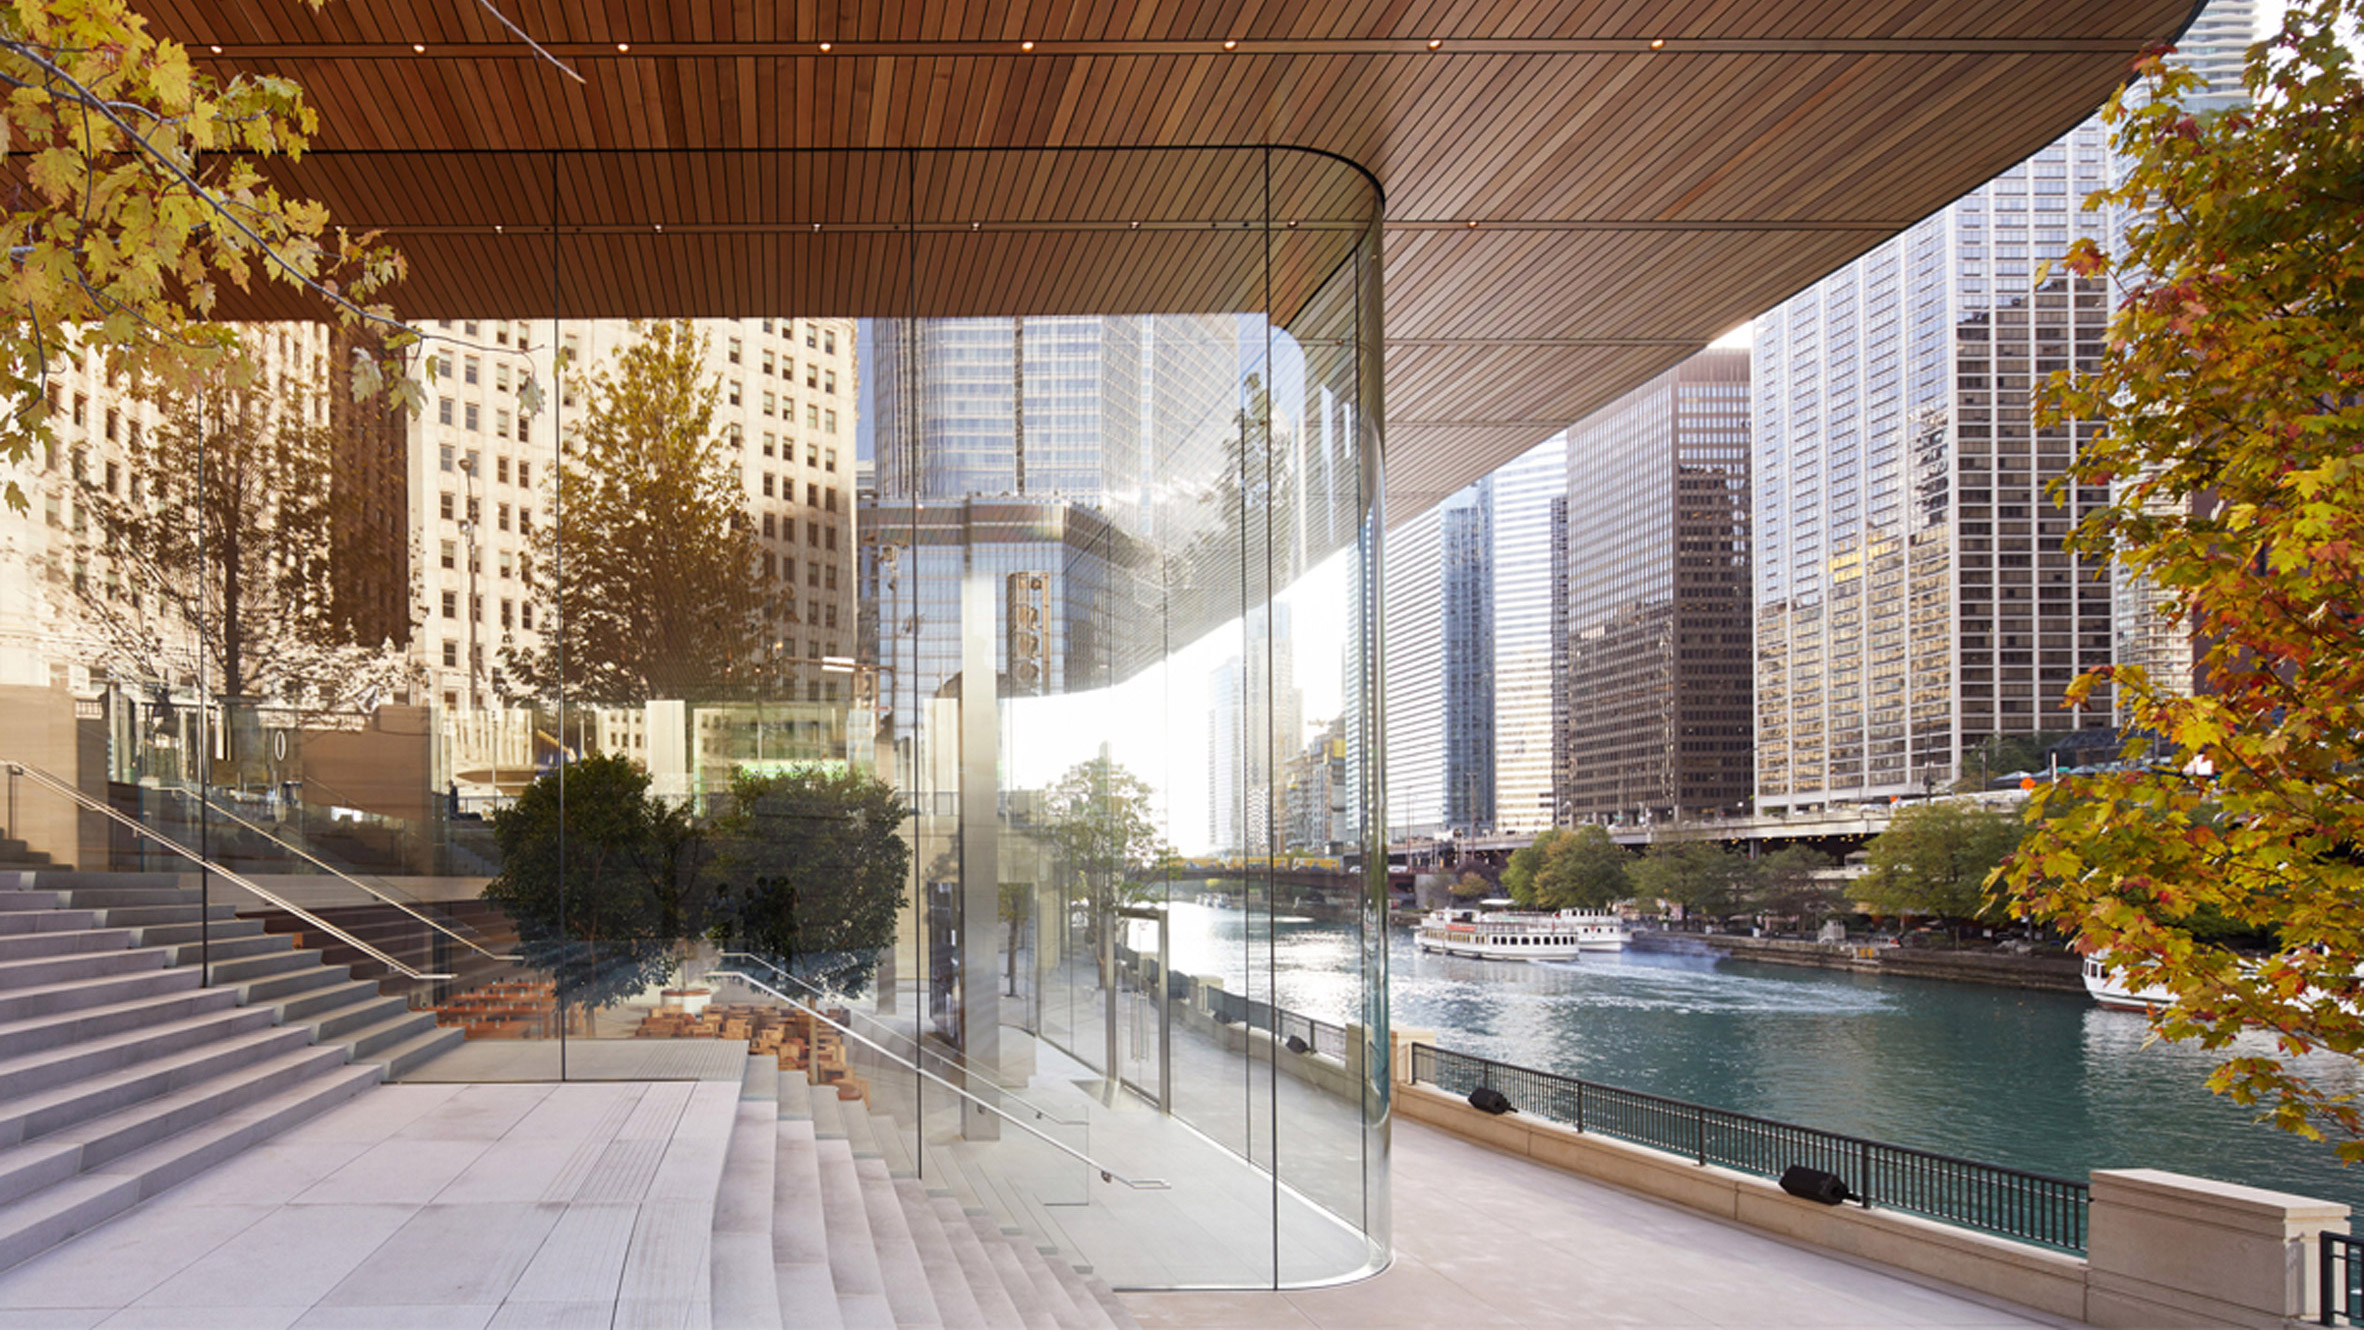 House design with shop - Macbook Shaped Roof Tops Foster Partners Glazed Apple Store In Chicago